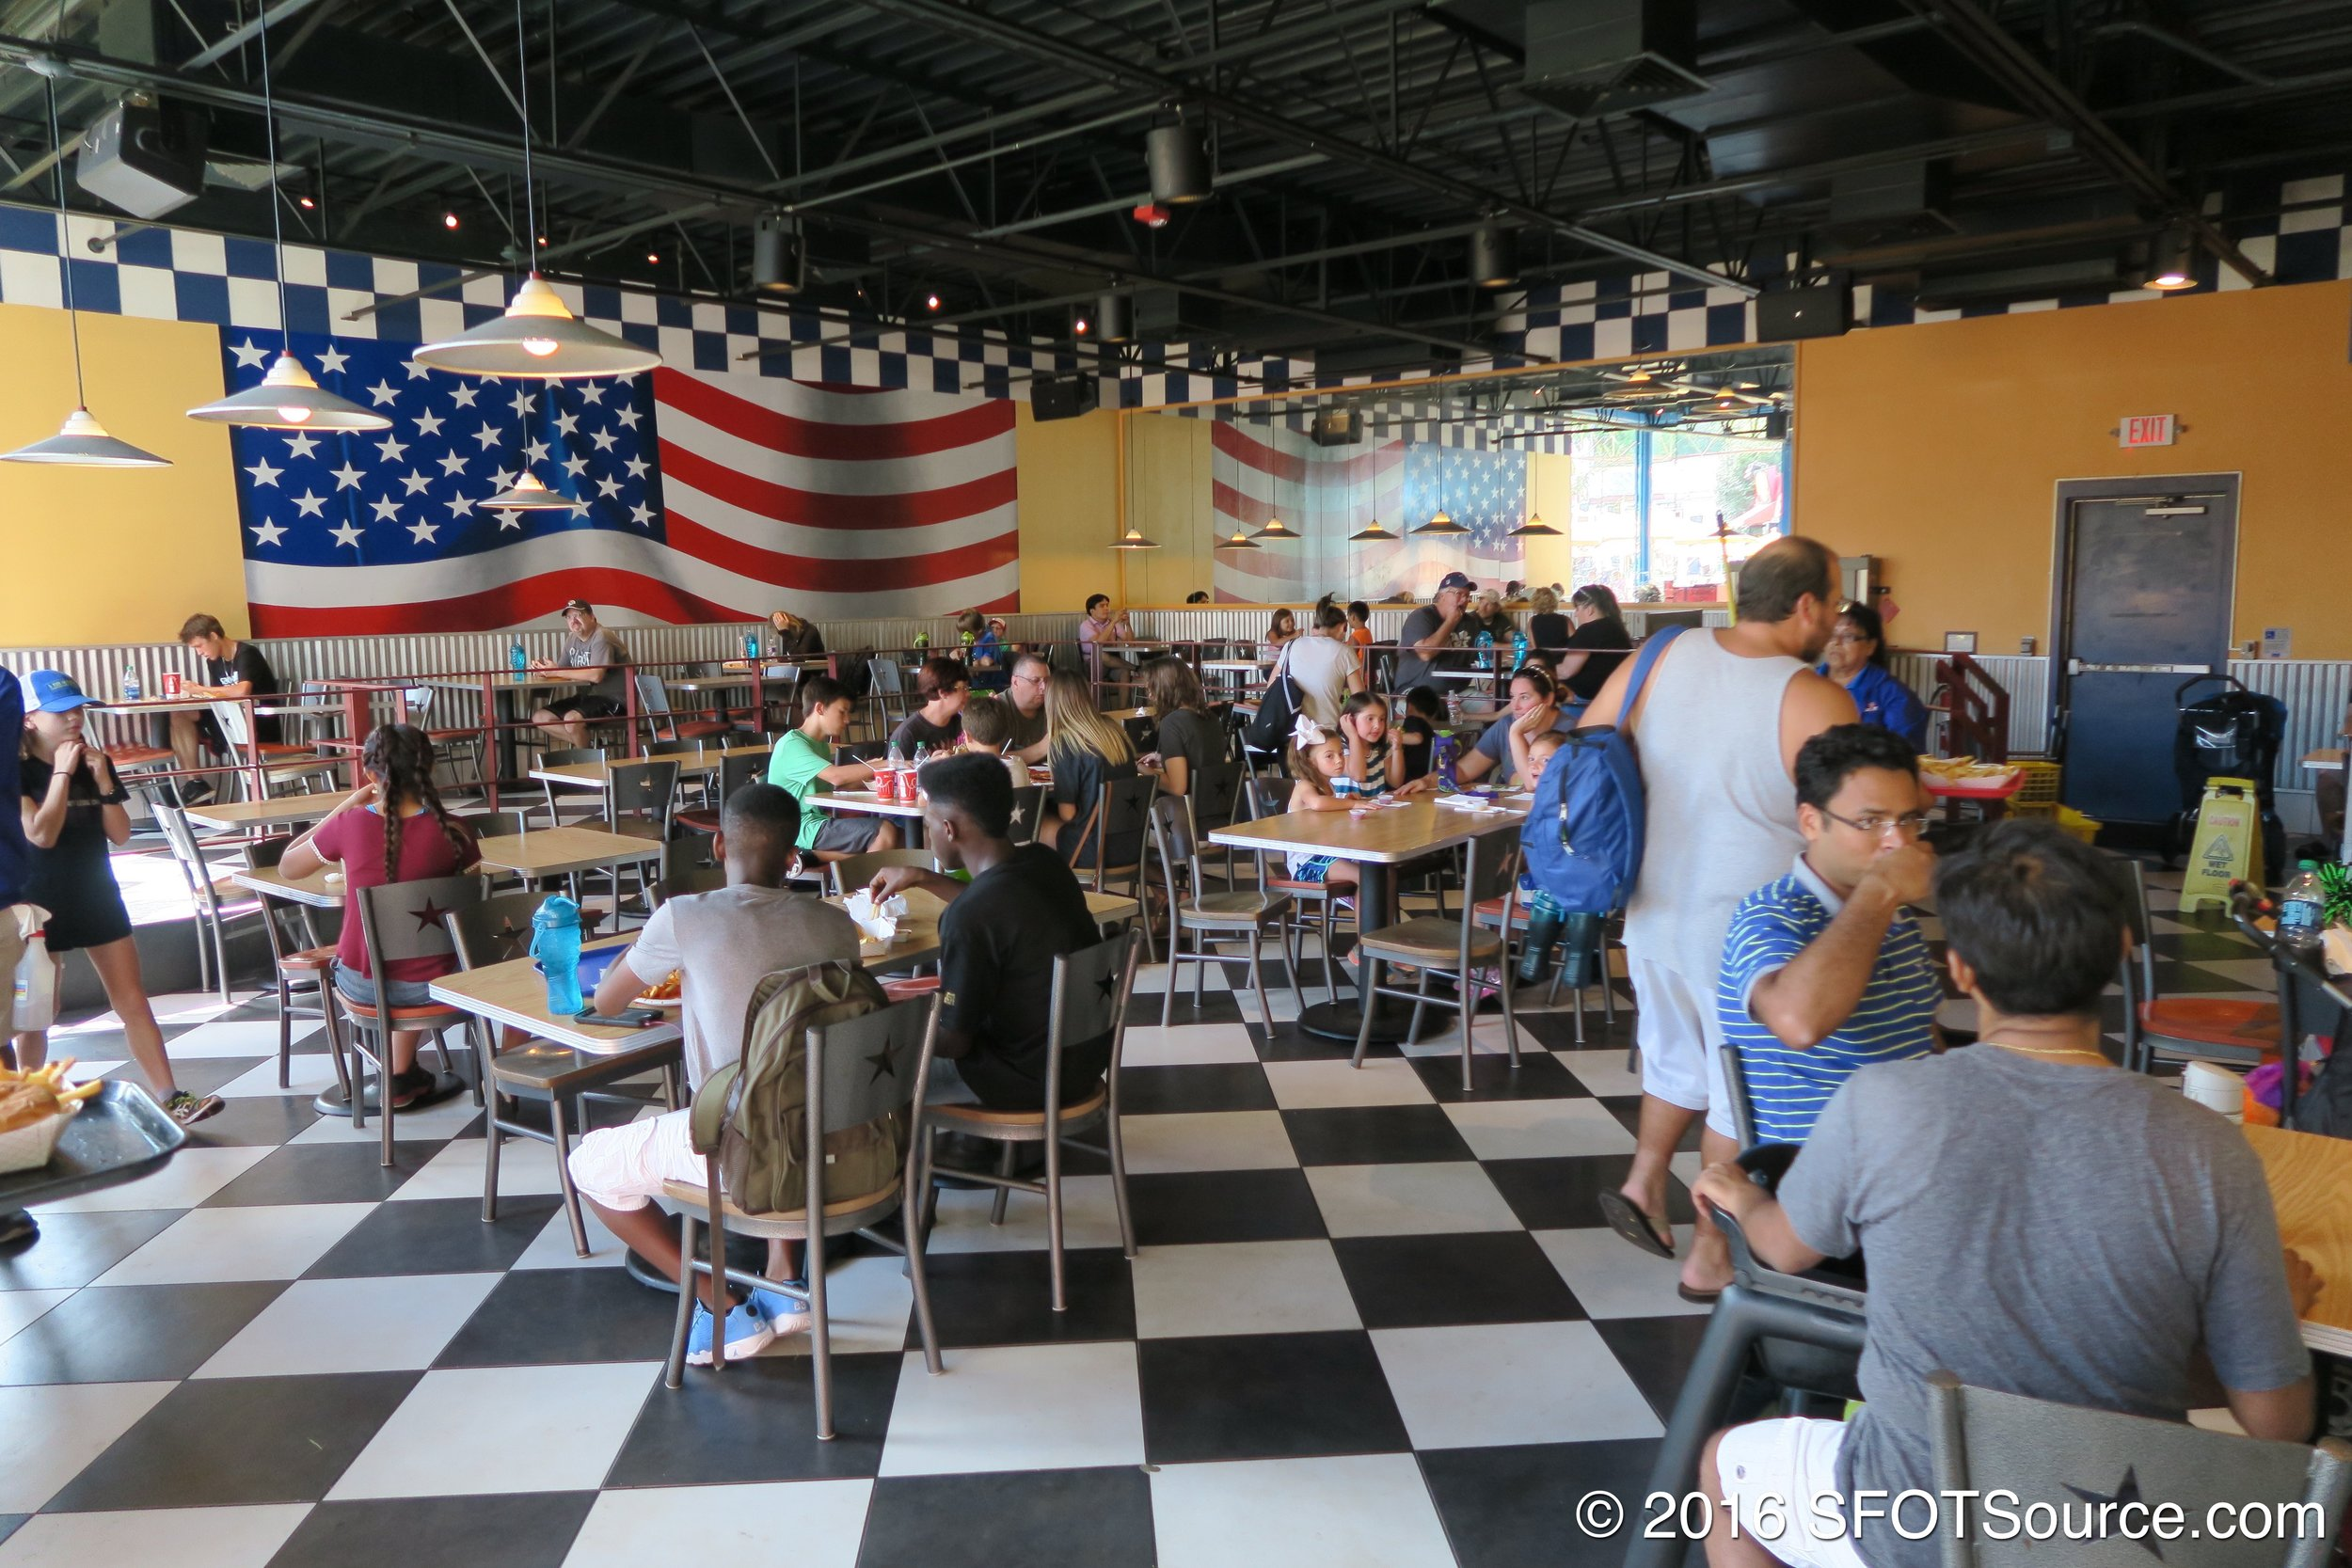 A look at All American Cafe's indoor seating area.